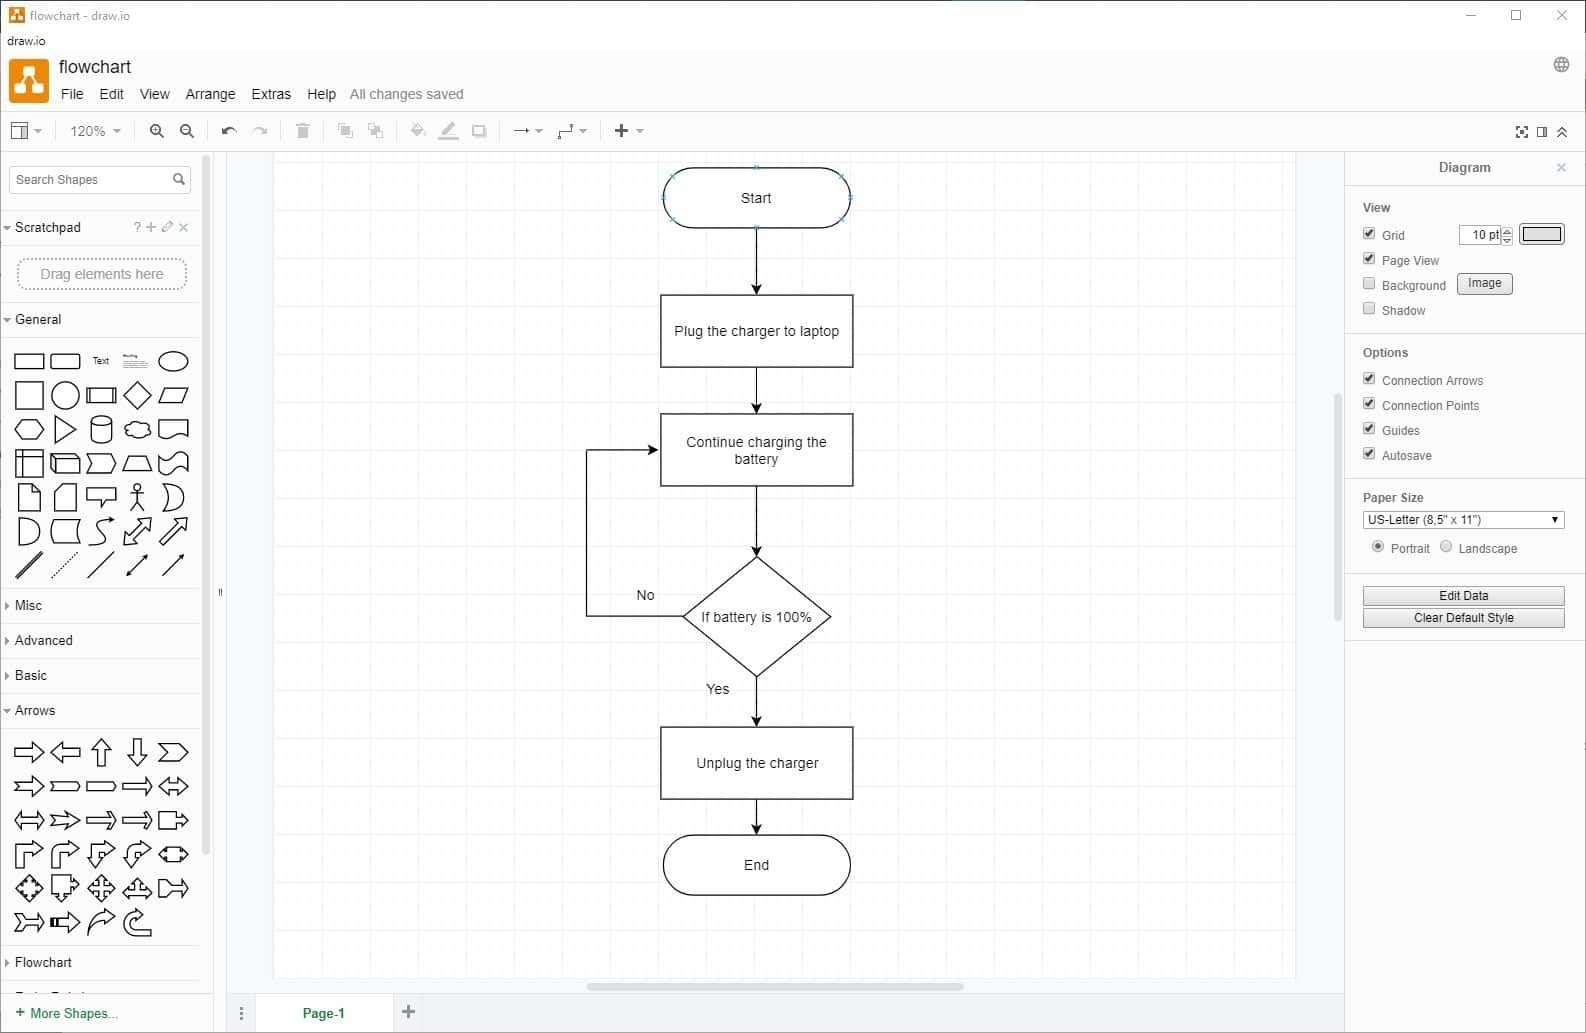 Draw.io is a free Flowchart and diagram creation ... on